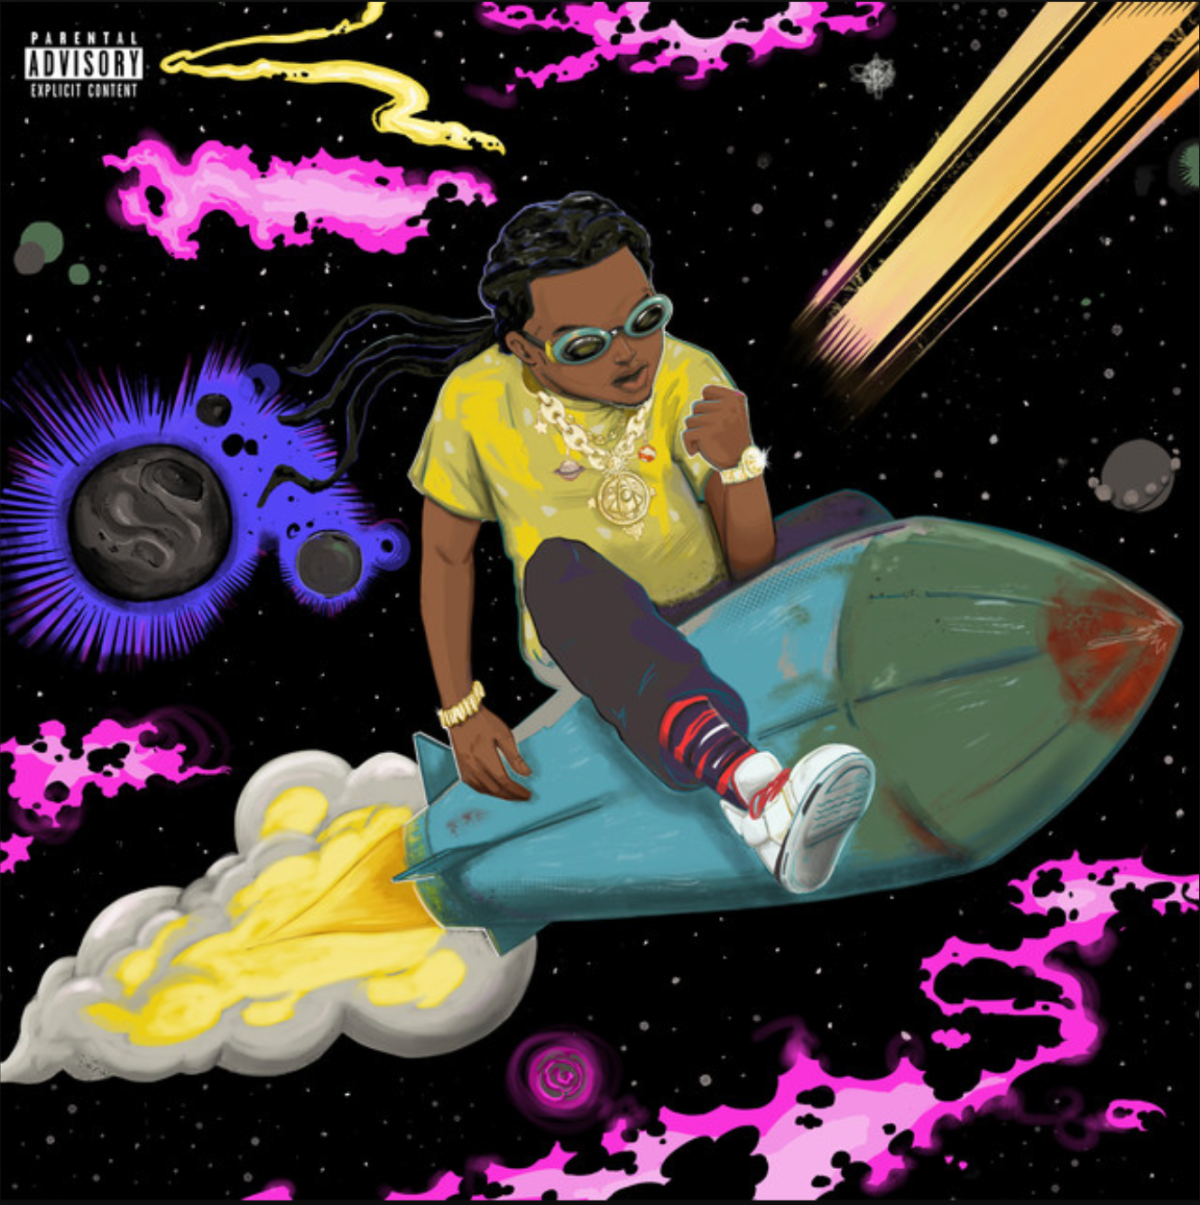 Takeoff's Solo Debut is Competent, but Uninventive